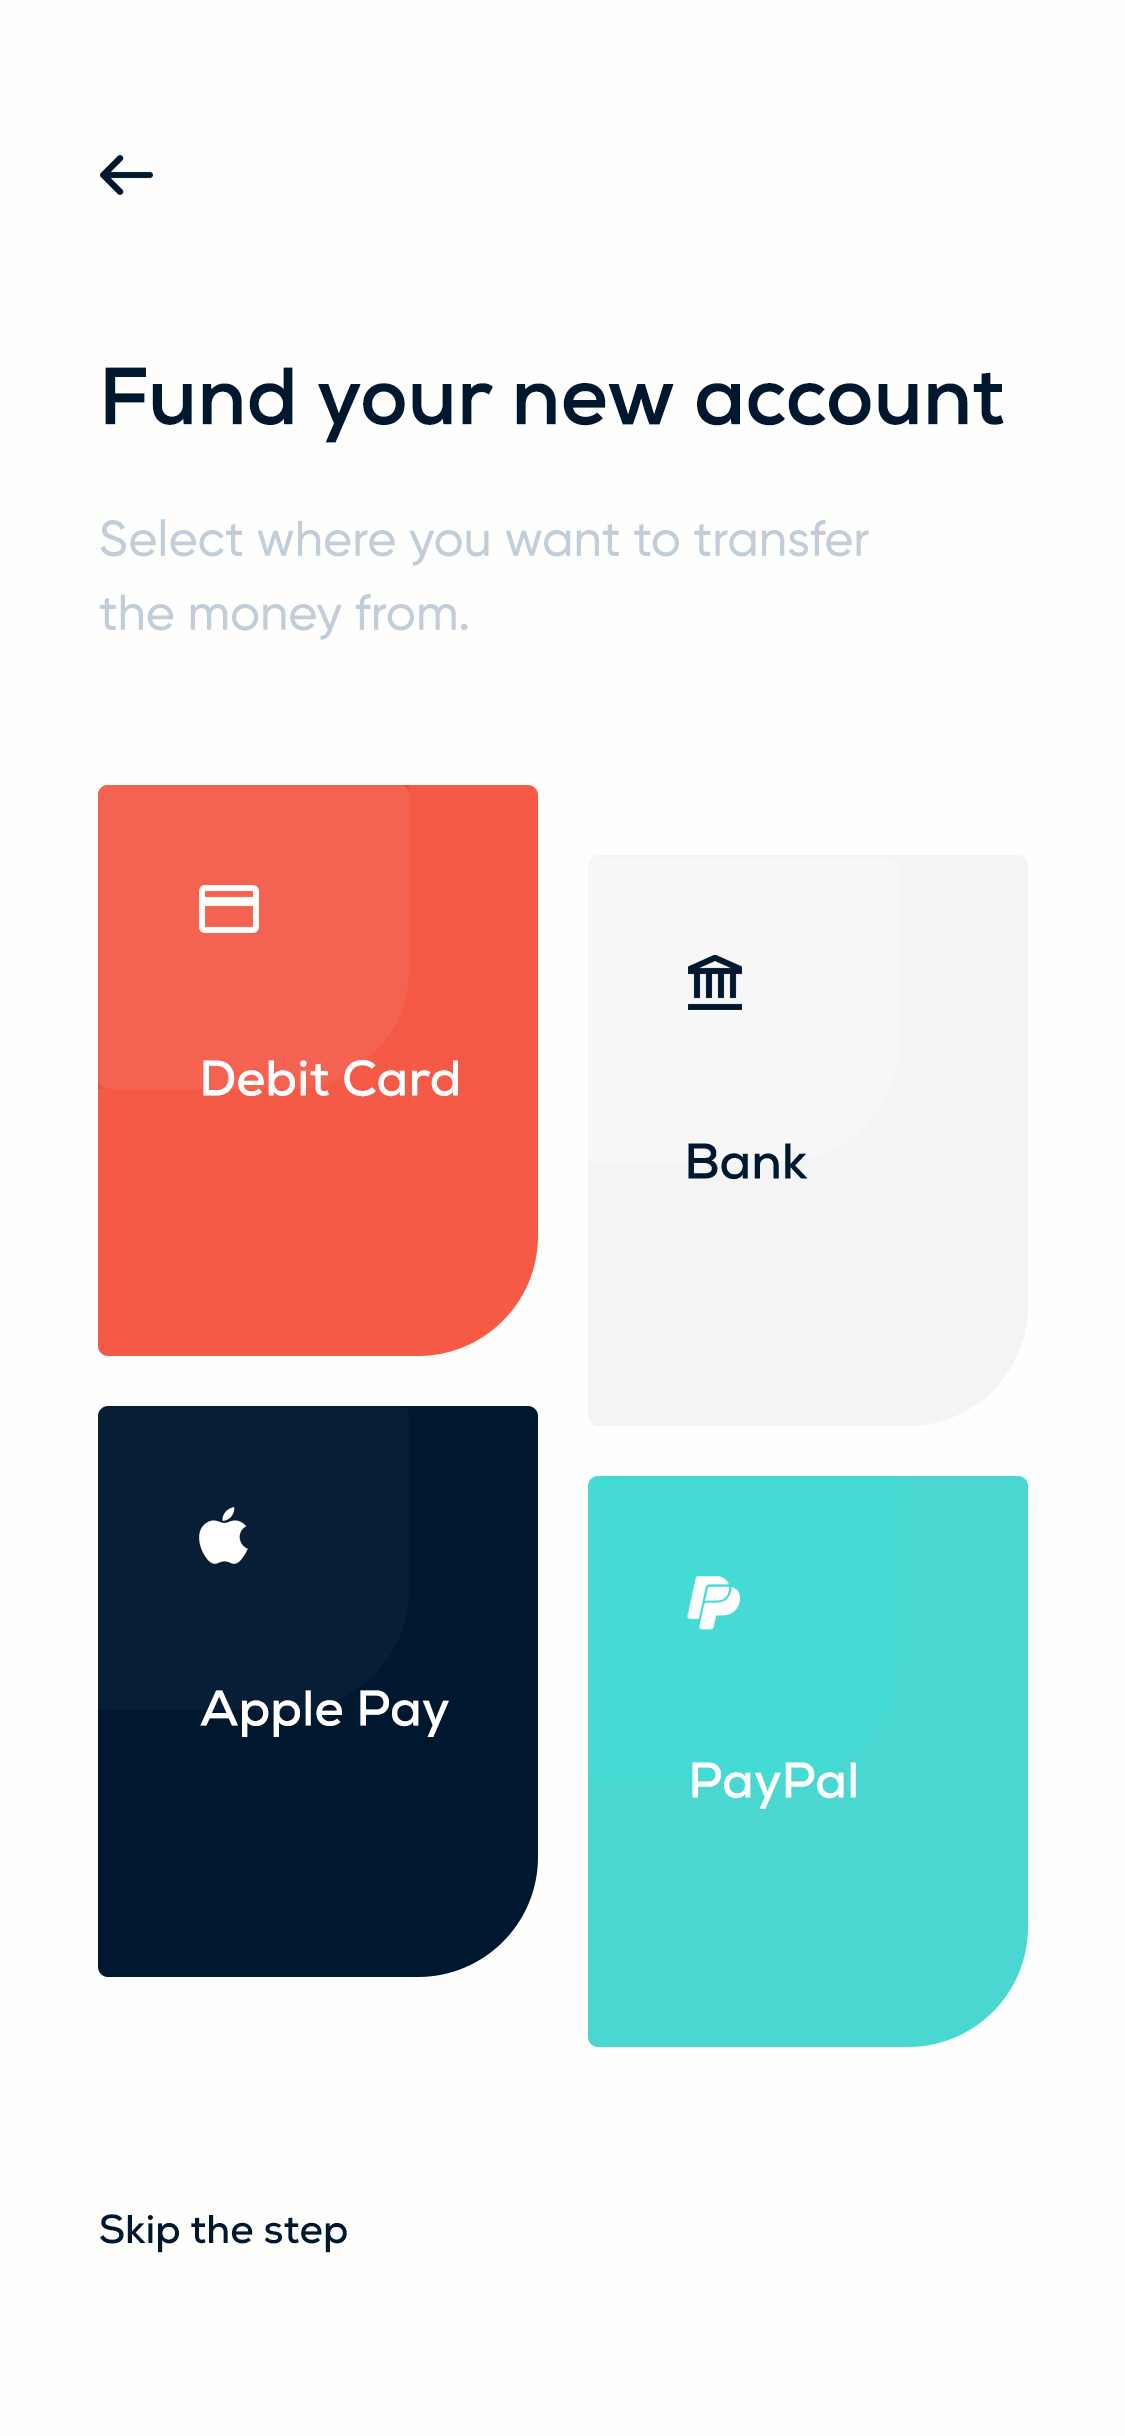 Dribbble - fund_account png by Sandro Tavartkiladze